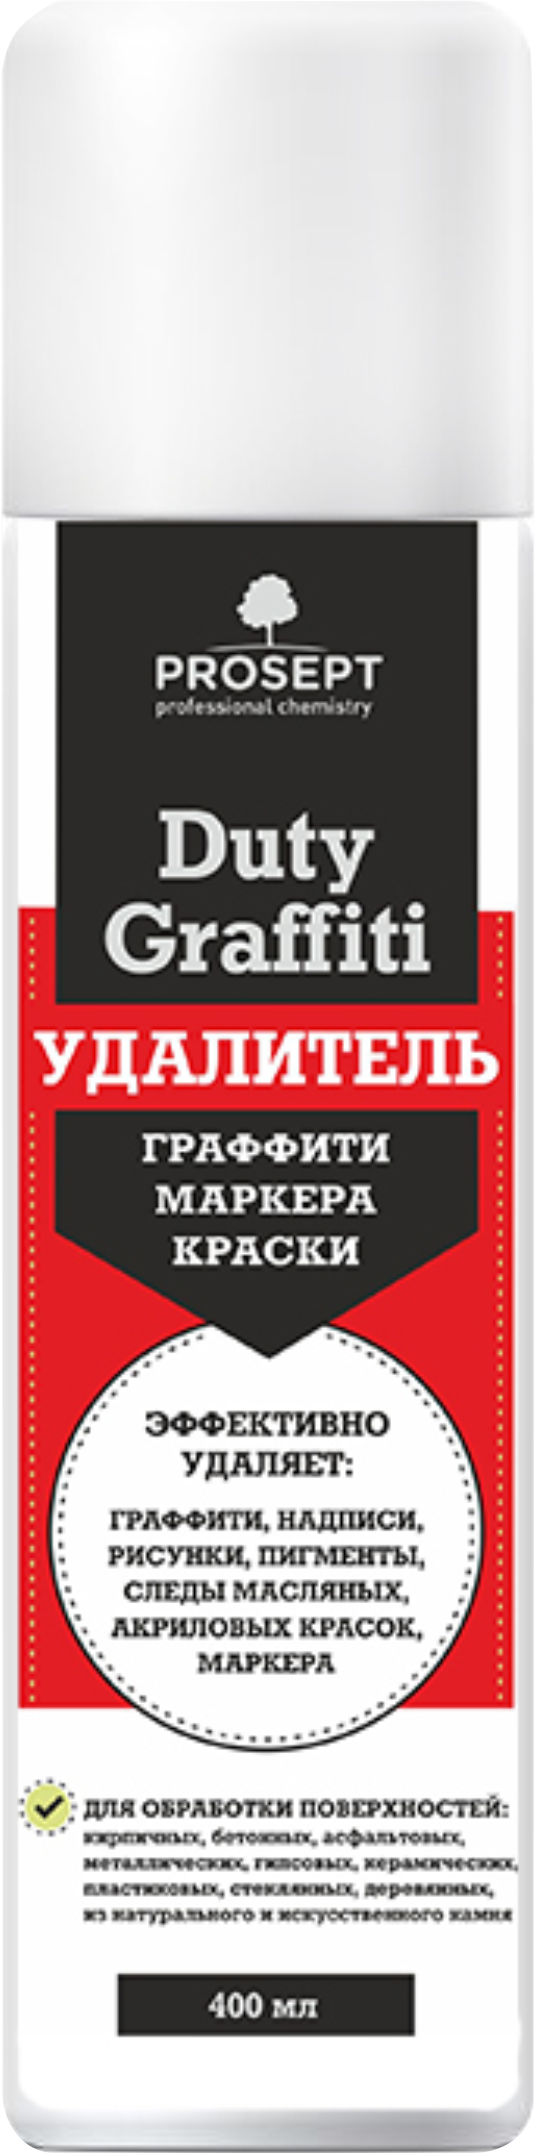 Duty Graffiti. Средство для удаления граффити